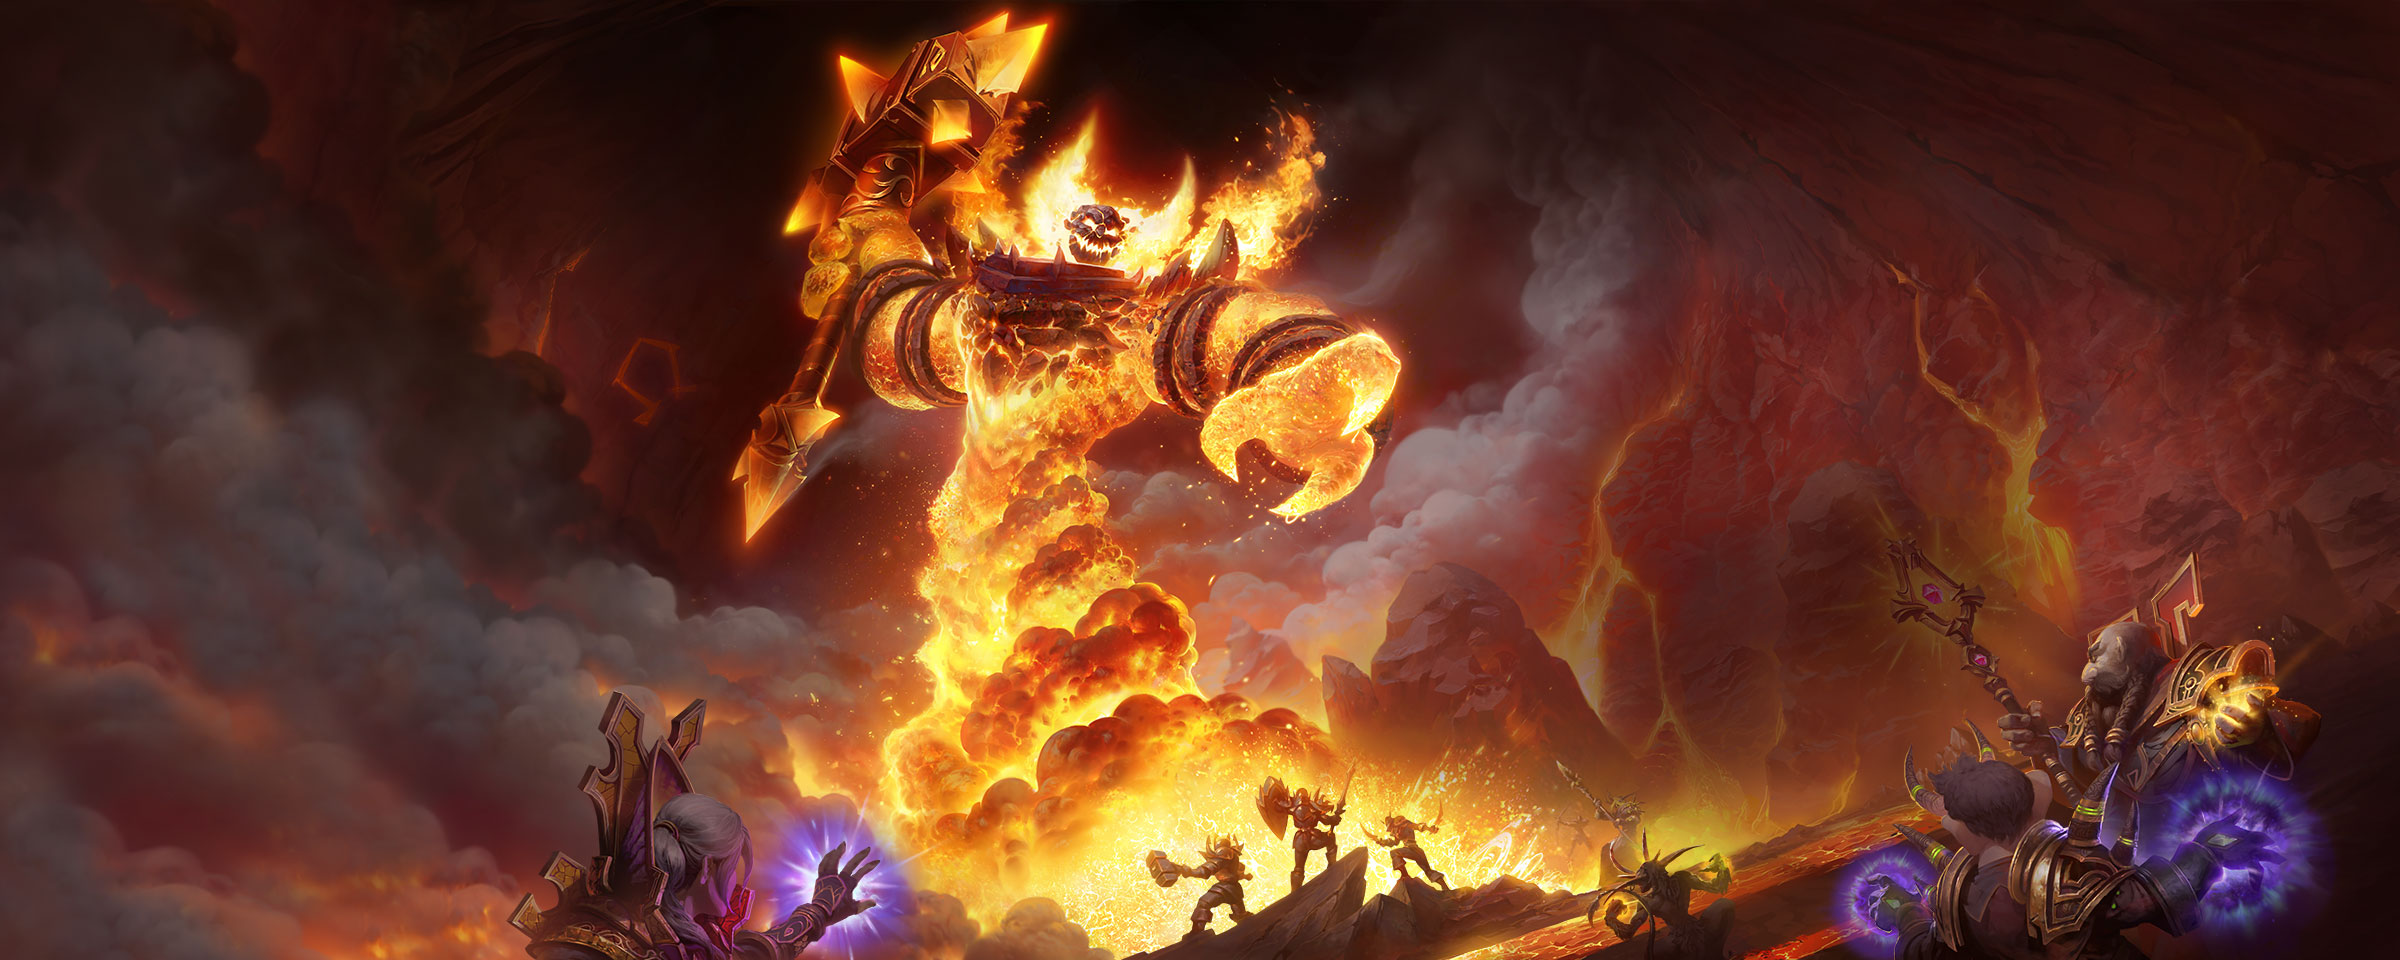 Heres the Classic WoW Ragnaros Background wow 2400x960